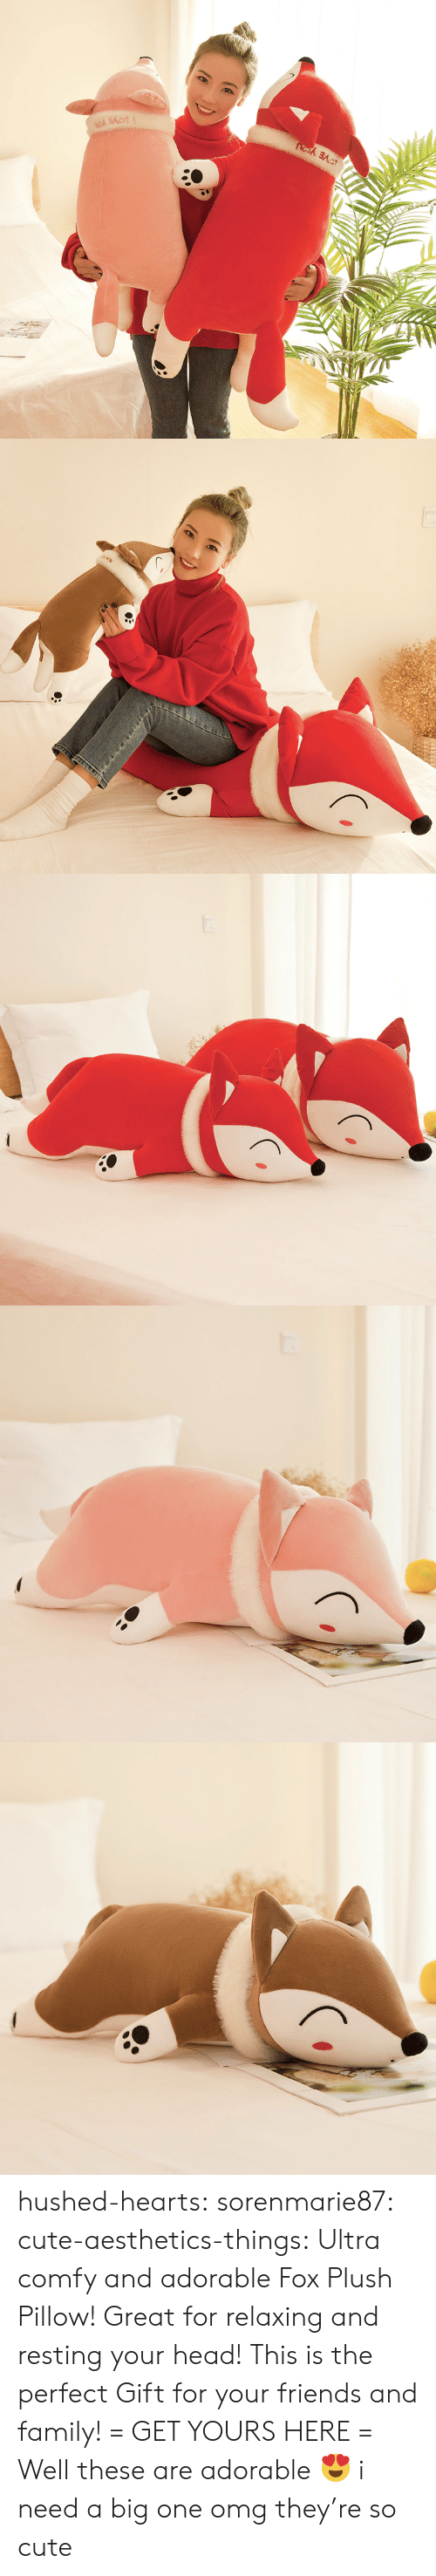 comfy: hushed-hearts:  sorenmarie87:  cute-aesthetics-things:  Ultra comfy and adorable Fox Plush Pillow! Great for relaxing and resting your head! This is the perfect Gift for your friends and family! = GET YOURS HERE =   Well these are adorable 😍  i need a big one omg they're so cute